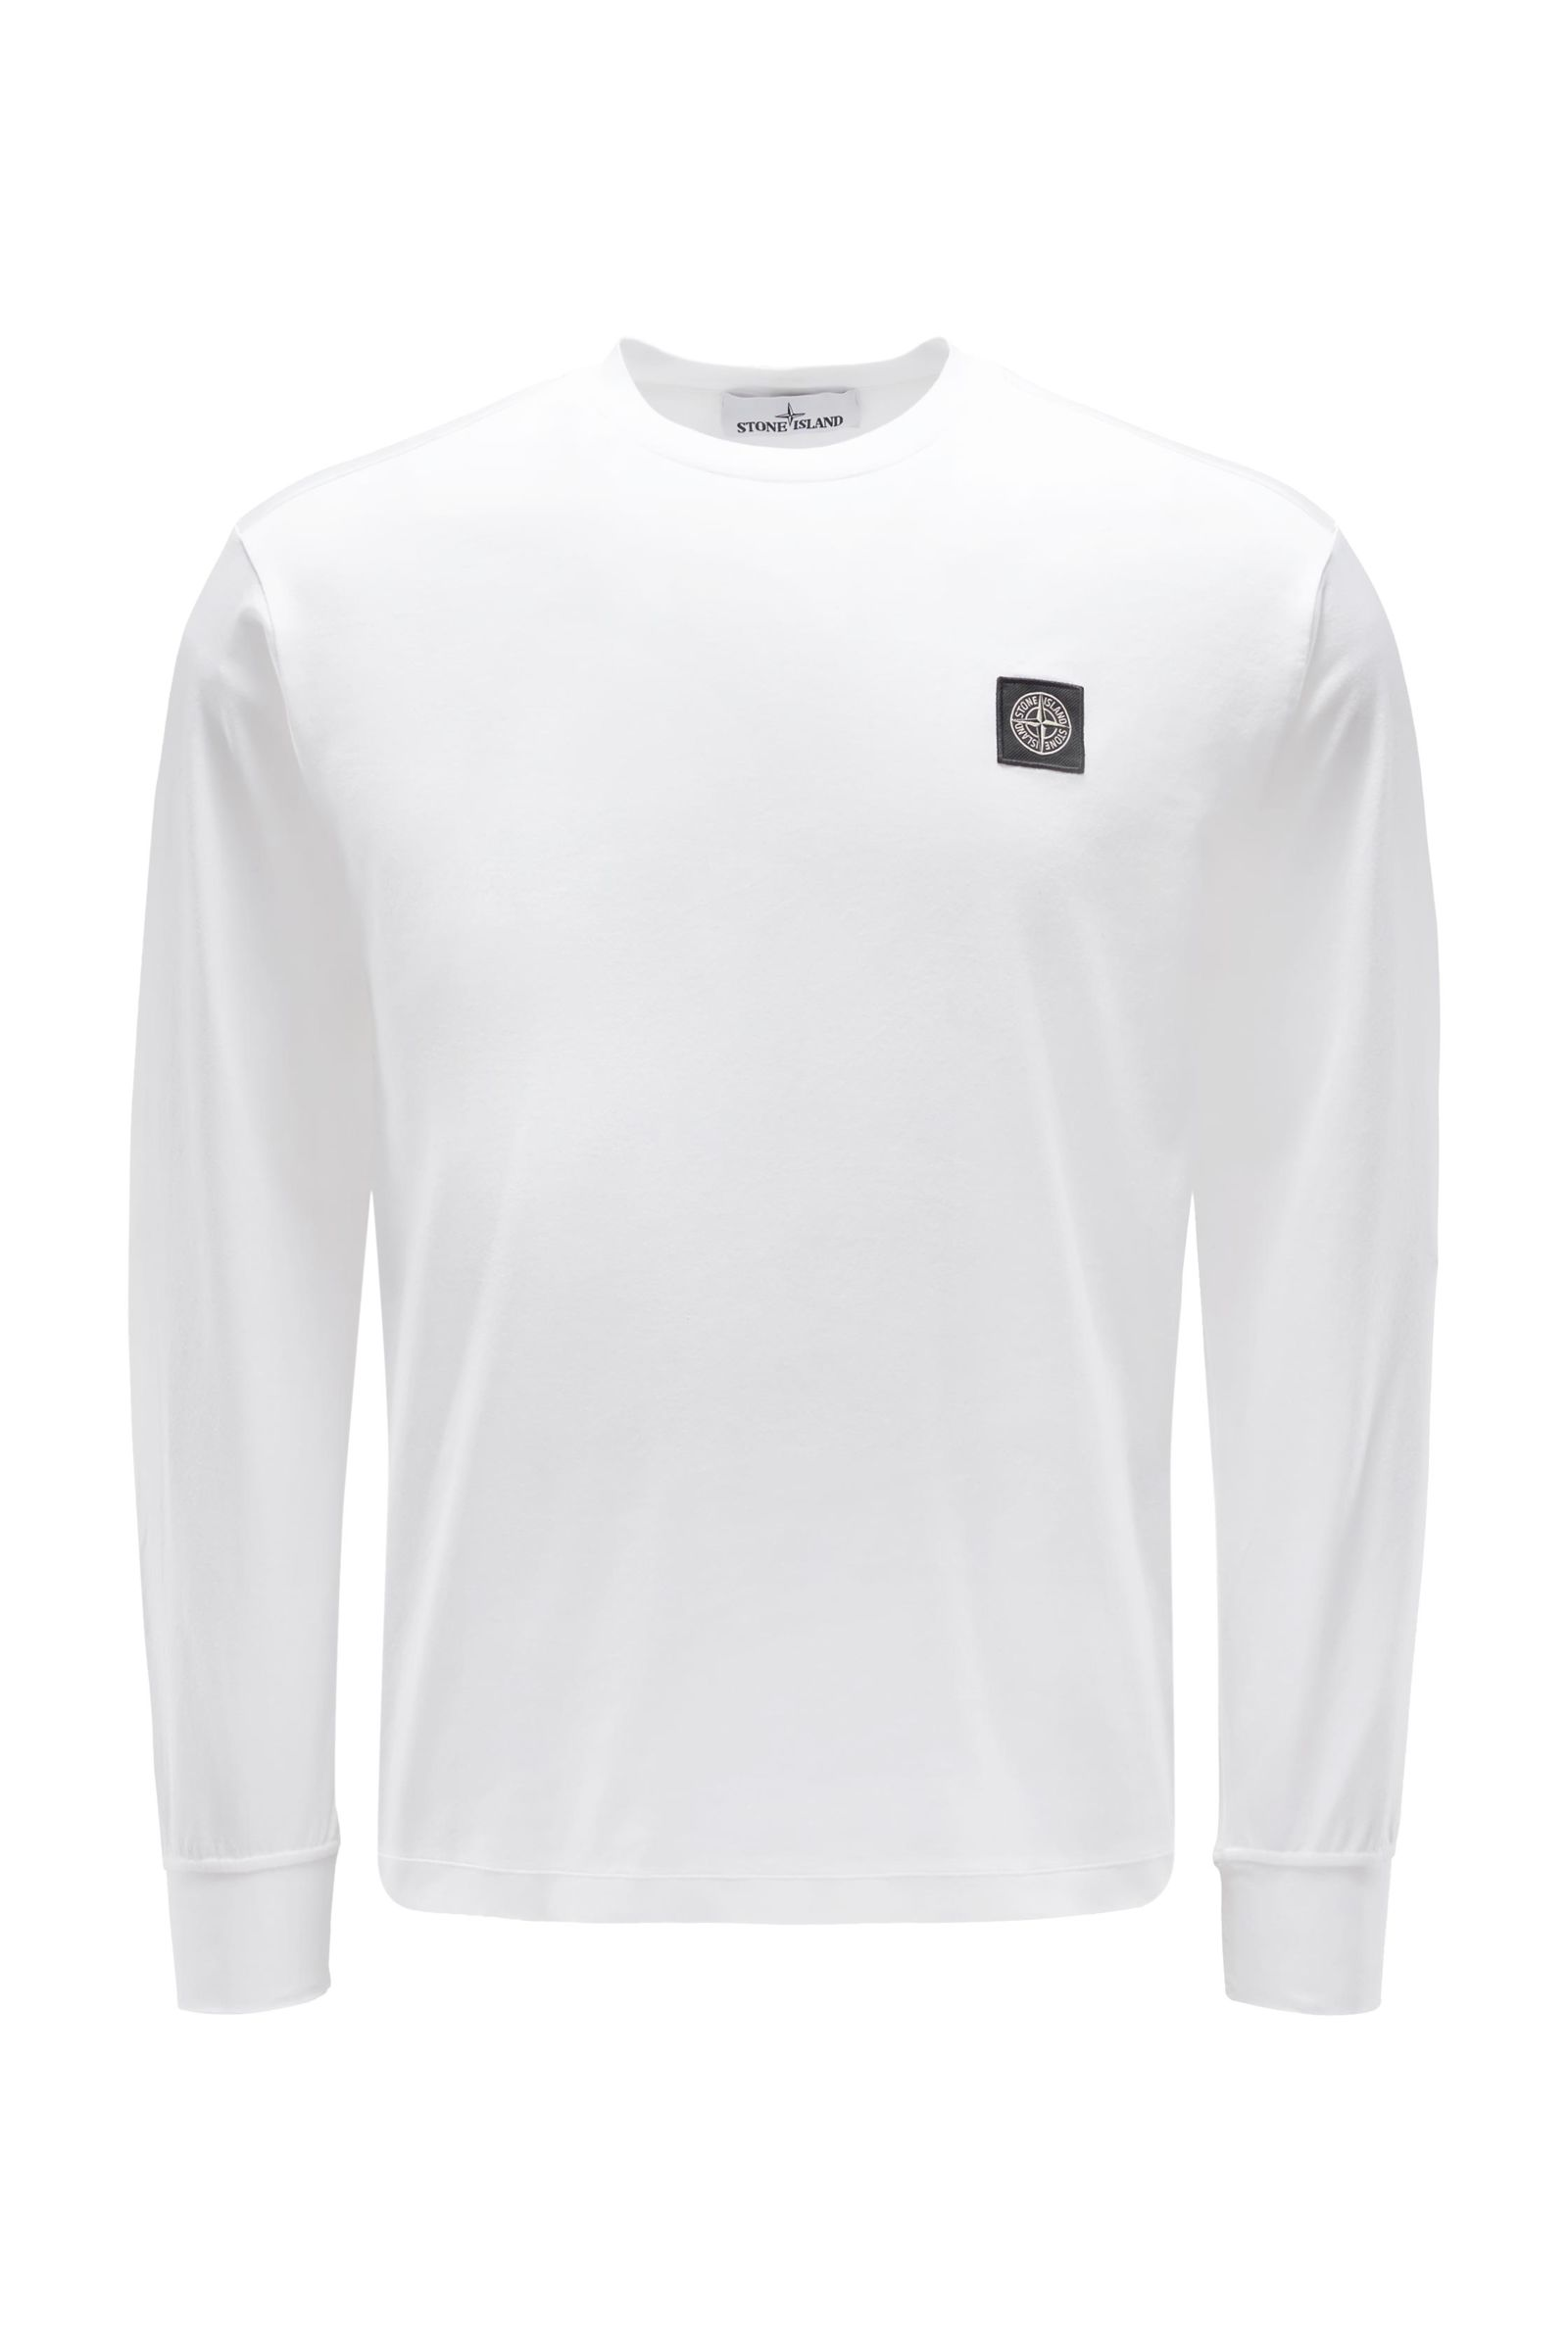 Crew neck long sleeve off-white